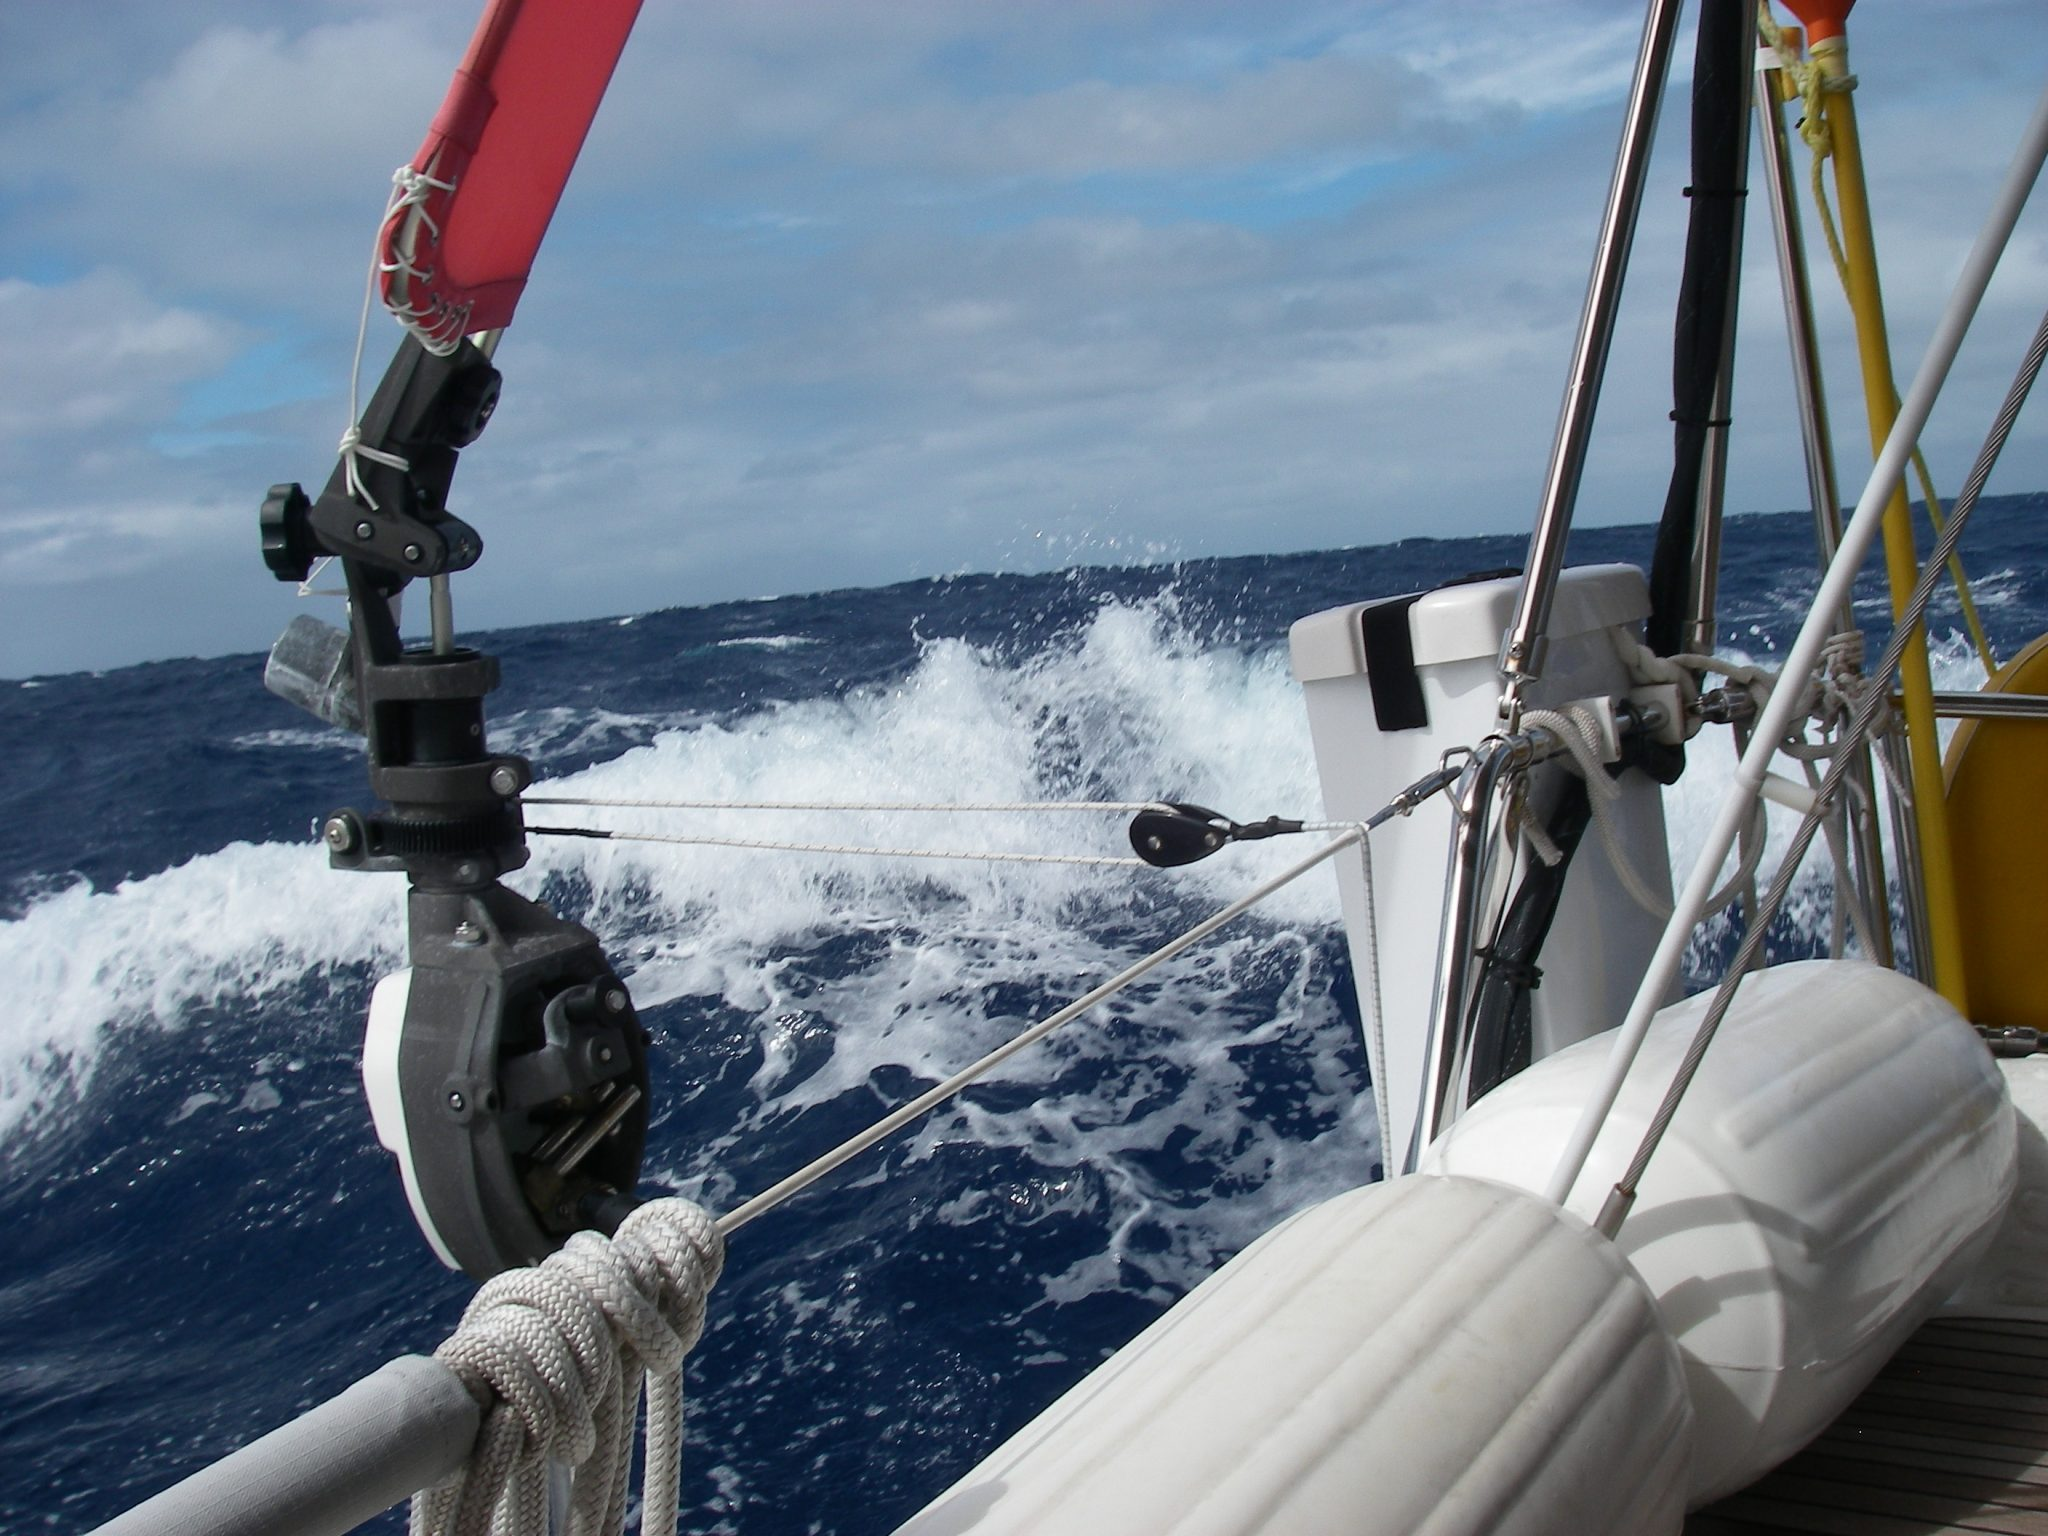 49. Joyful's Hydrovane wind steering device performed well. It saved wear and tear on the person on watch, and electrical power that would have been necessary for the autohelm to steer the boat